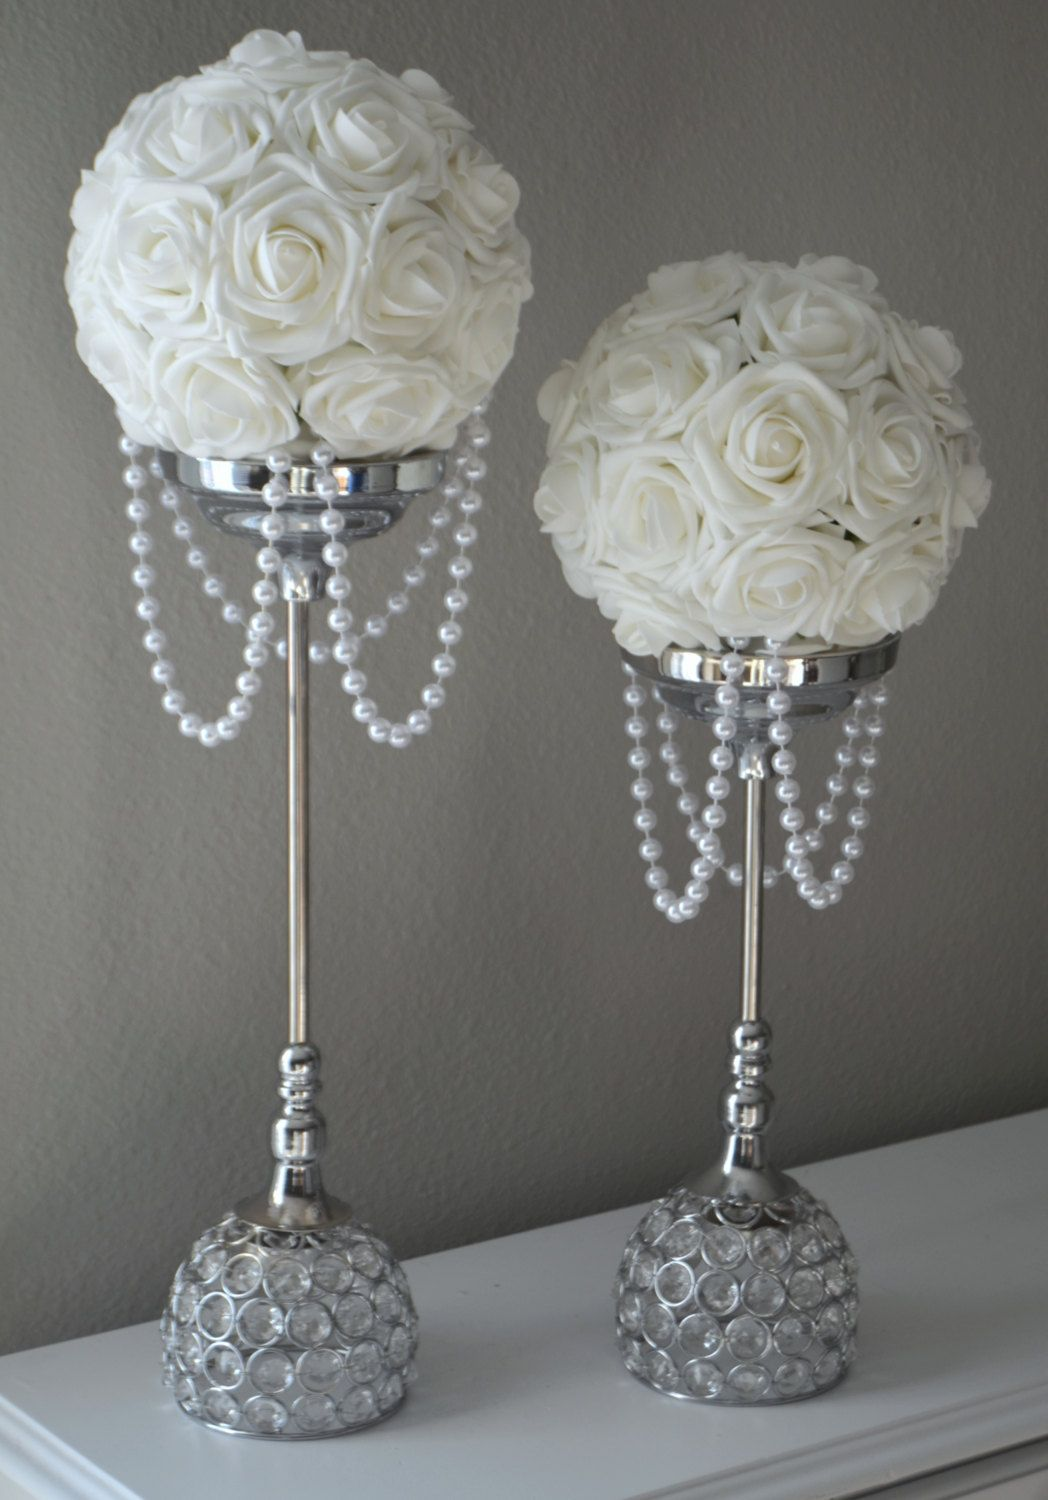 White Flower Ball With Draping Pearls Wedding Decor Bridal Shower